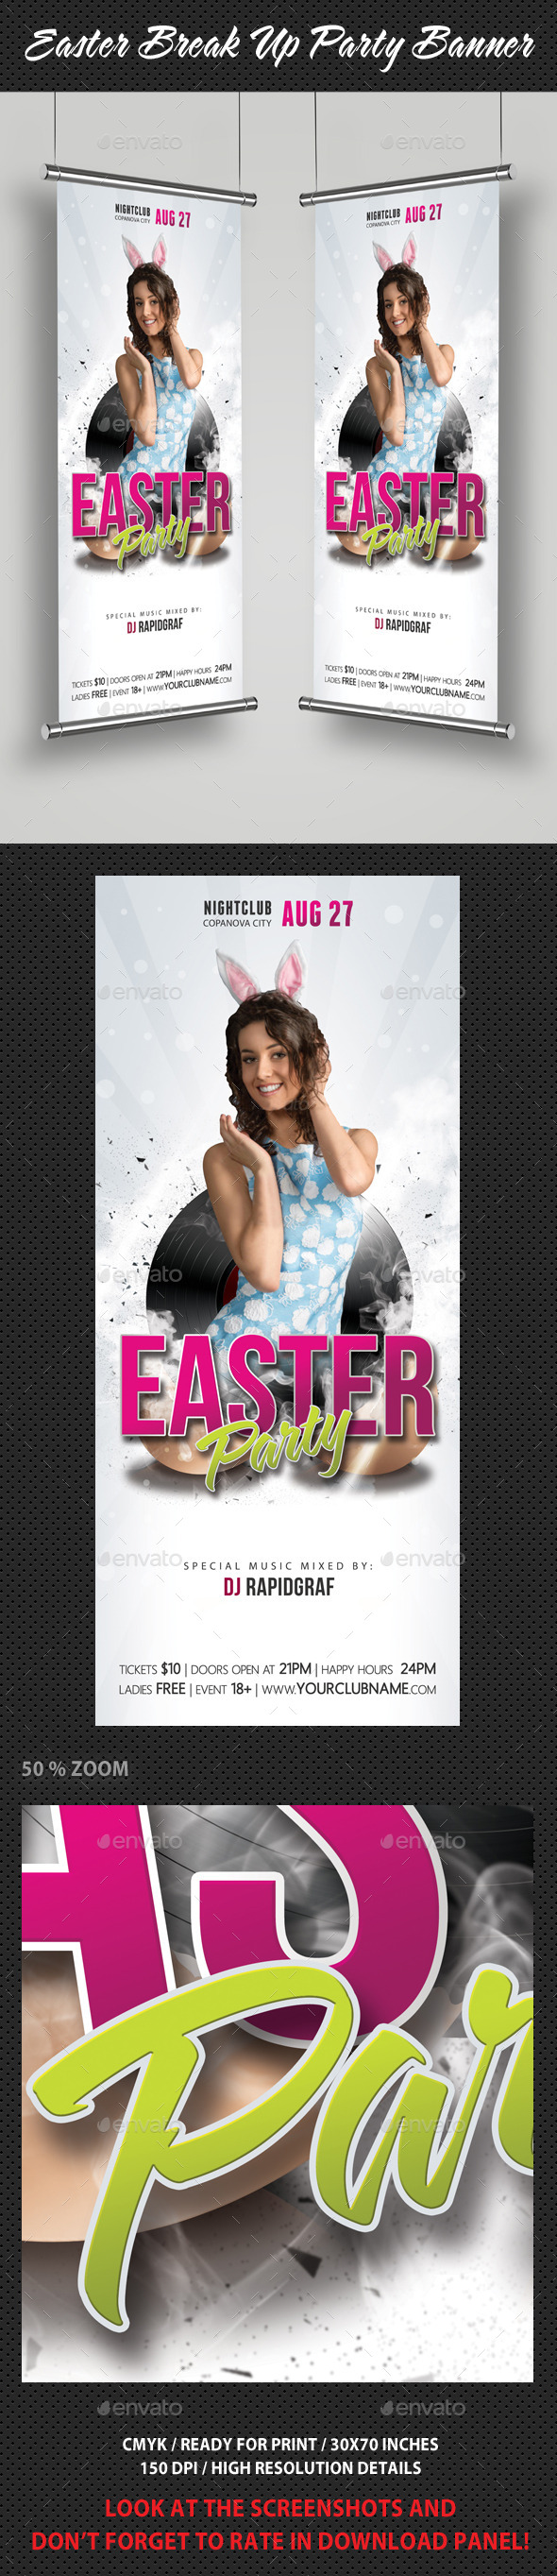 GraphicRiver Easter Break Up Party Banner 10787476